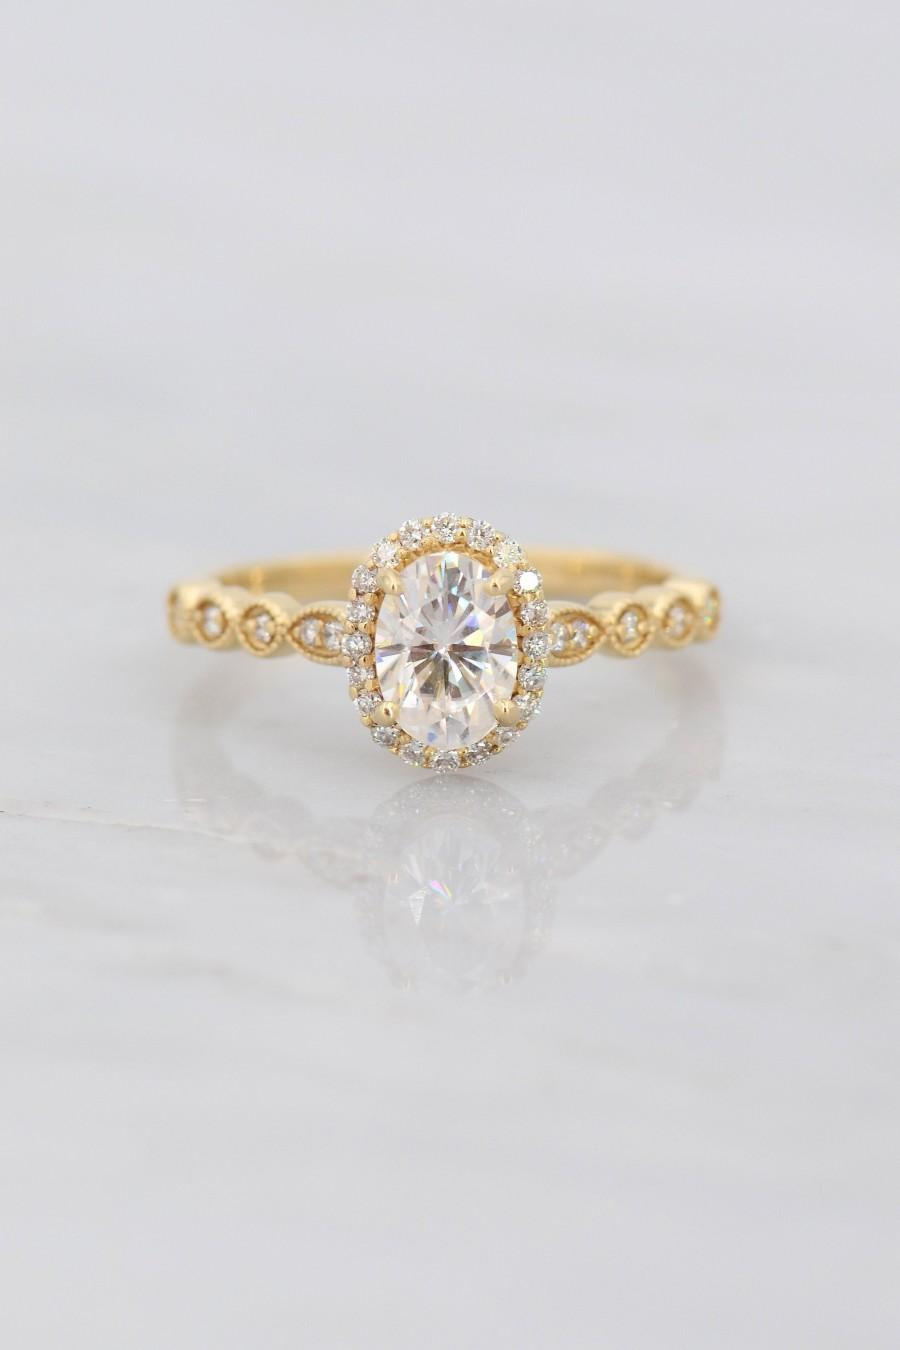 Свадьба - Moissanite Engagement Ring, Forever One Moissanite Ring, Near Colorless Moissanite Ring, Oval Cut Moissanite Ring, Charles and Colvard